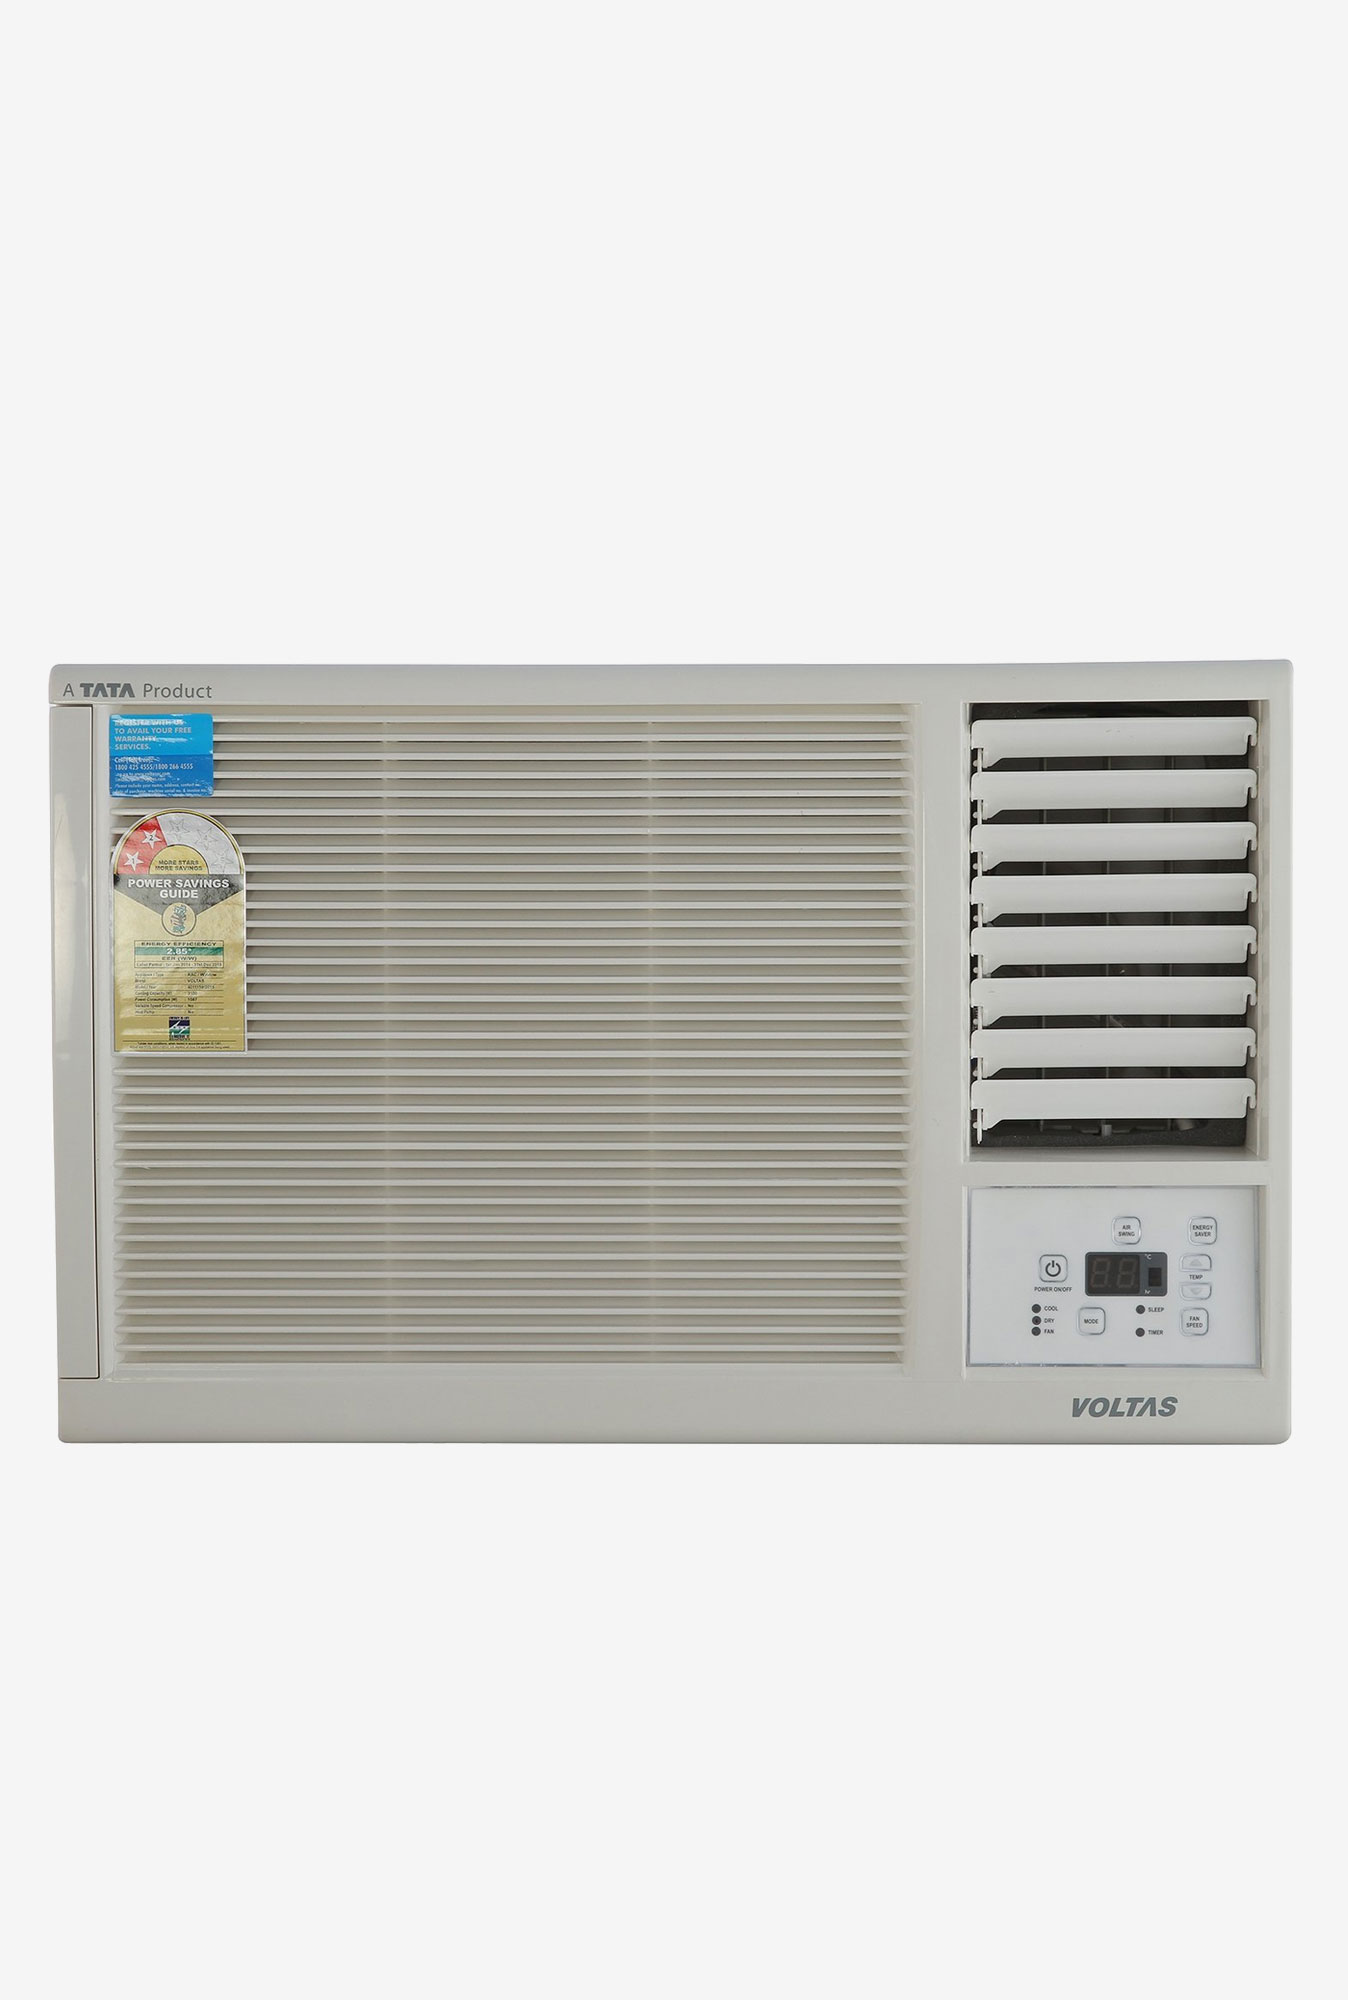 #2879A3 Voltas 1 Ton 2 Star Window Air Conditioner 122 LYE – SSSCART 2017 14672 What Is The Best Air Conditioner Brand photo with 1348x2000 px on helpvideos.info - Air Conditioners, Air Coolers and more